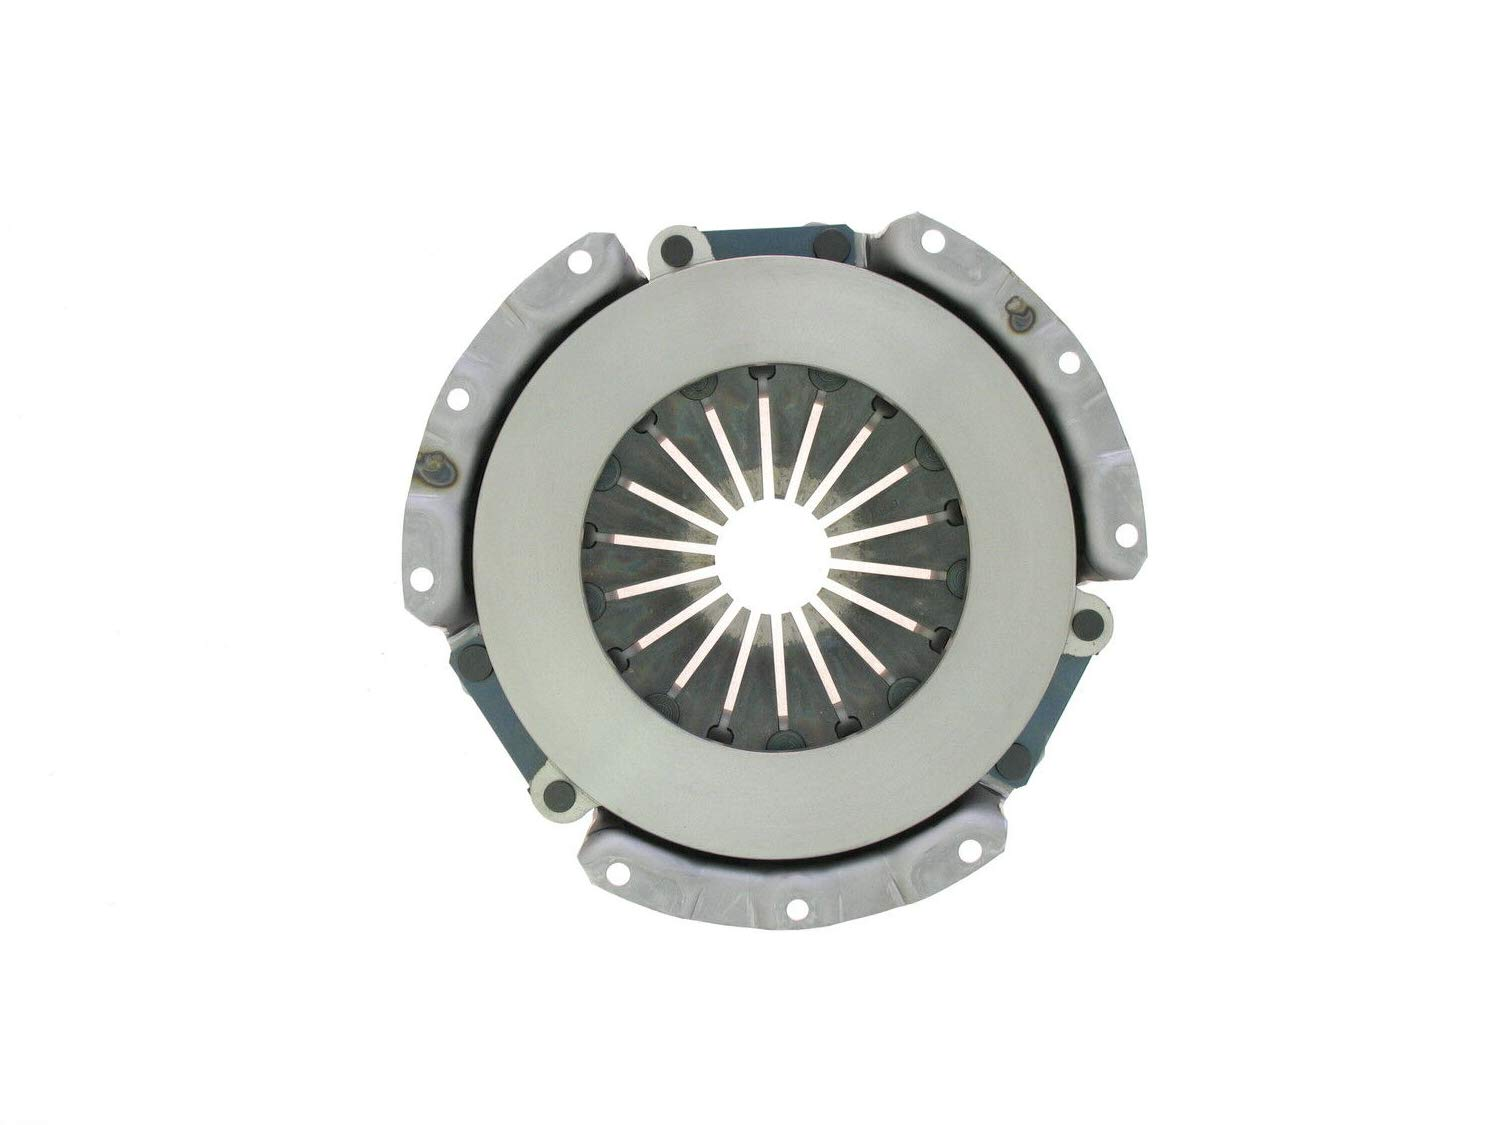 EPC Fits Chrysler Conquest Mitsubishi Mighty Max Fits Dodge Power Ram Clutch Pressure Plate